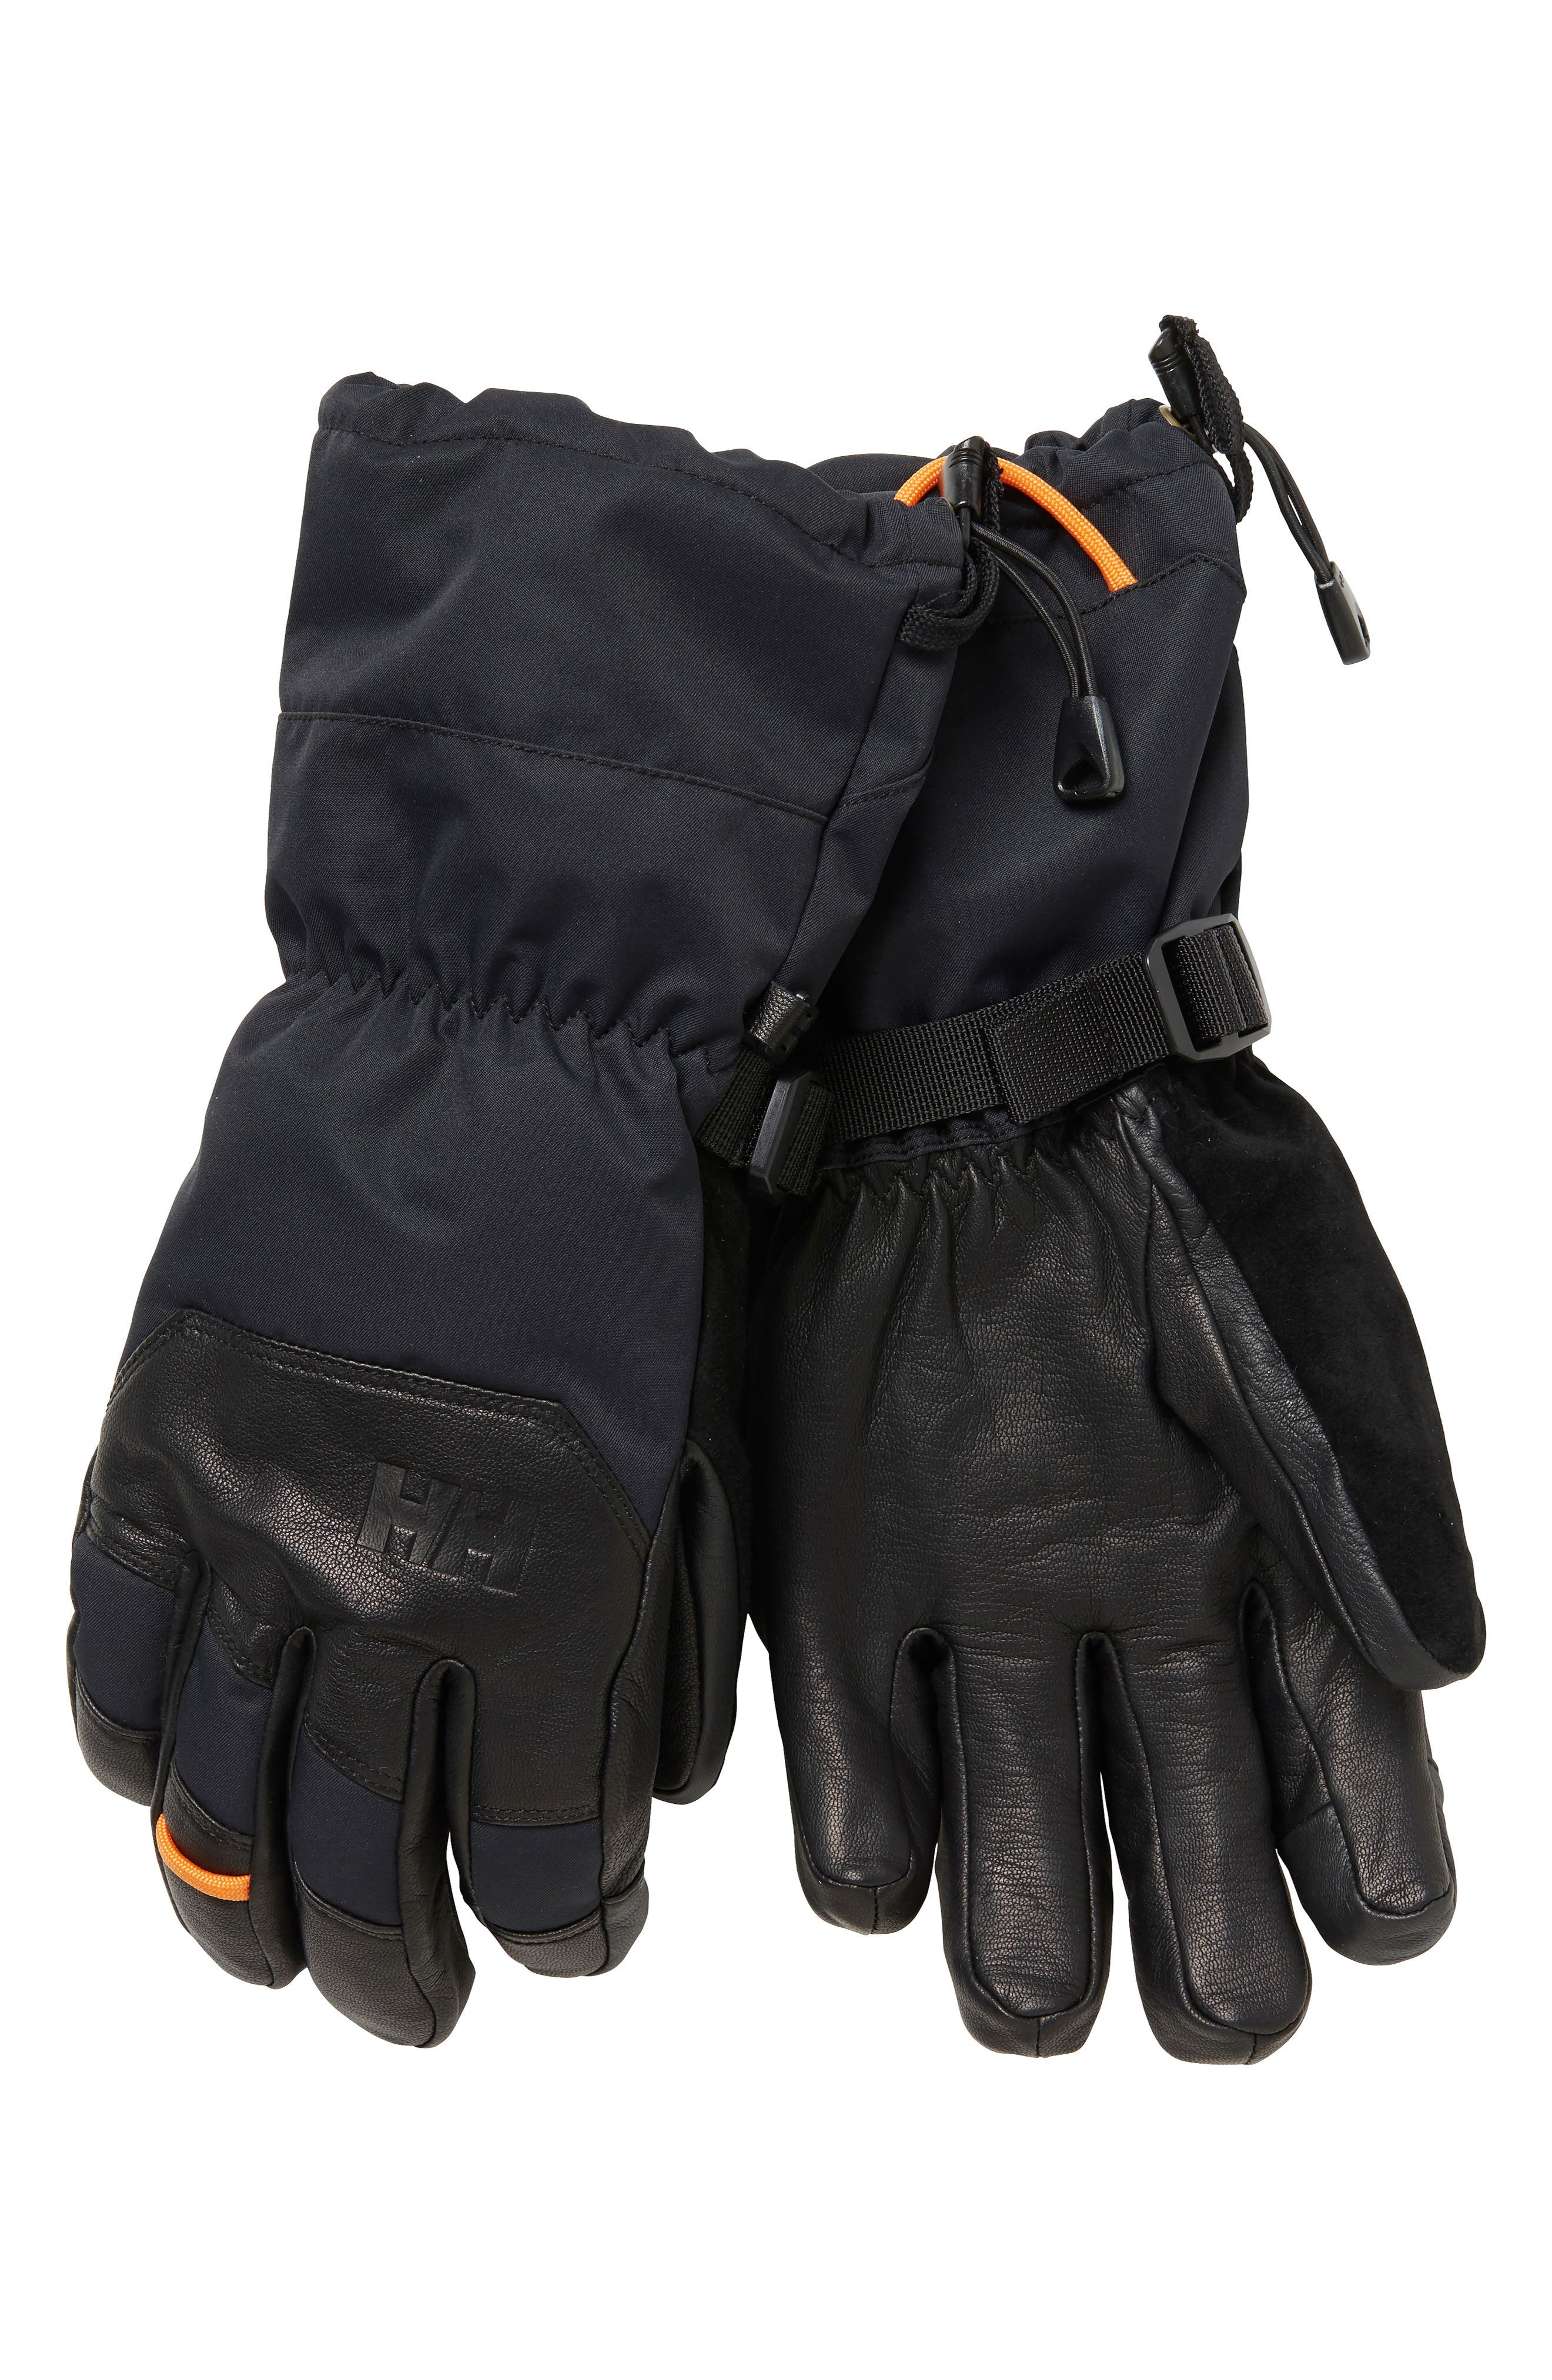 Ullr Sogn Helly Tech<sup>®</sup> Ski Gloves,                             Main thumbnail 1, color,                             BLACK